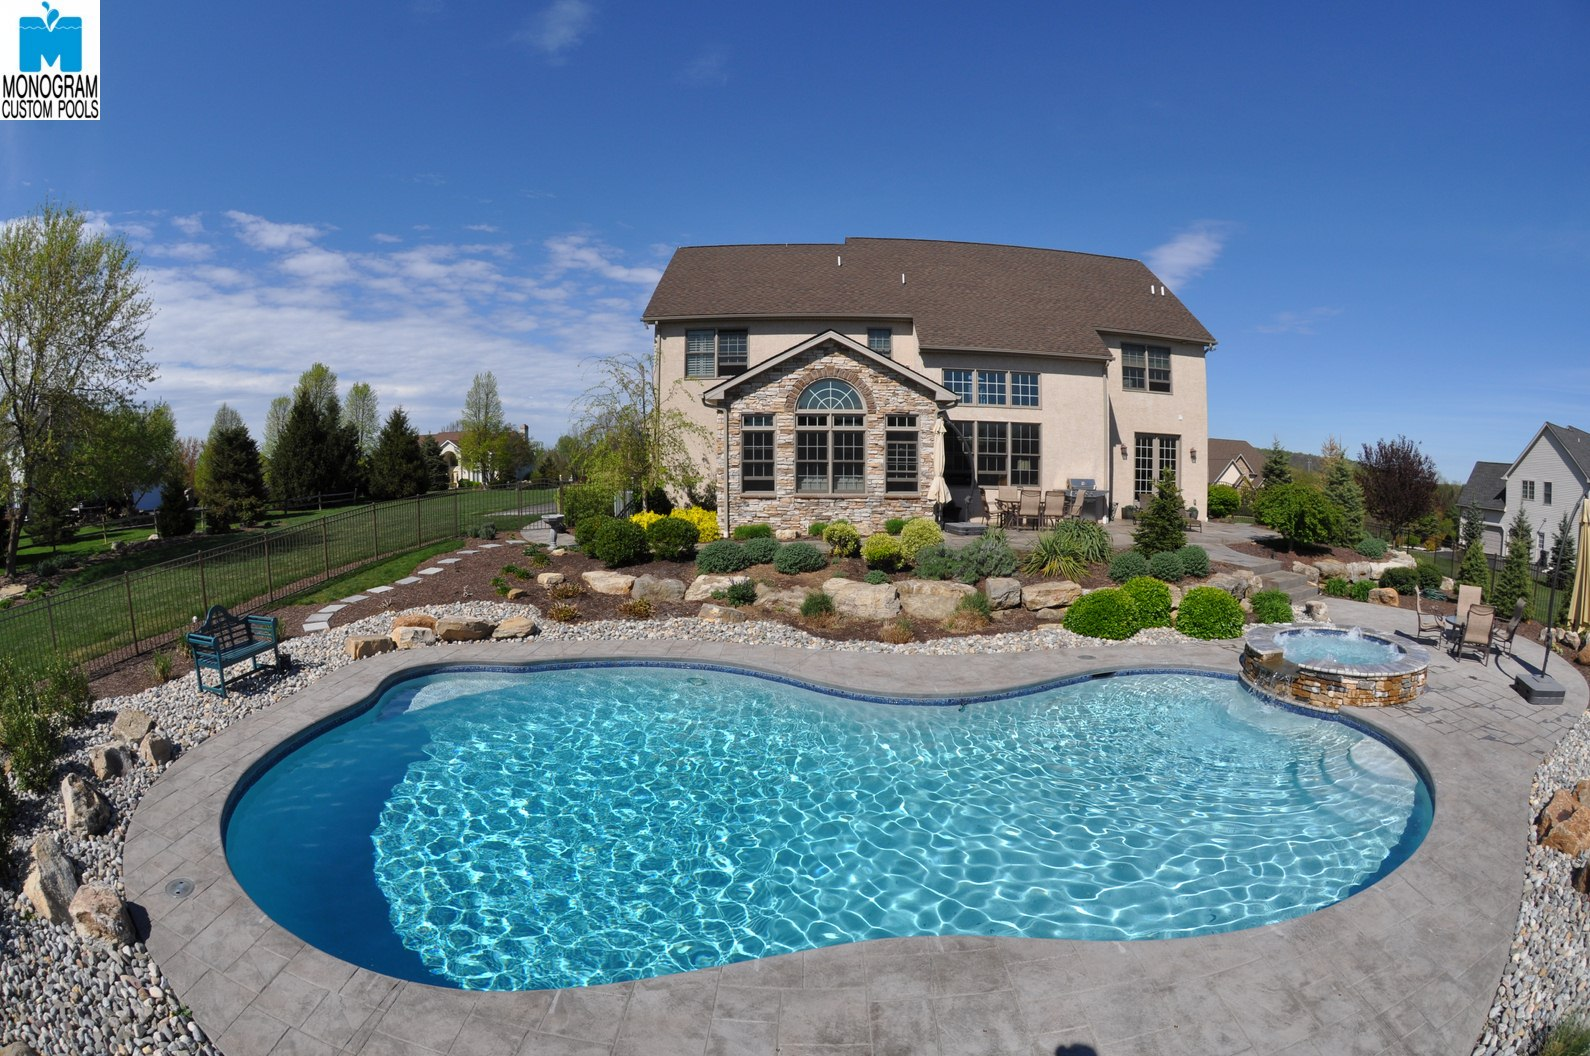 Monogram custom pools named as one of the top 10 pool for Top pool builders